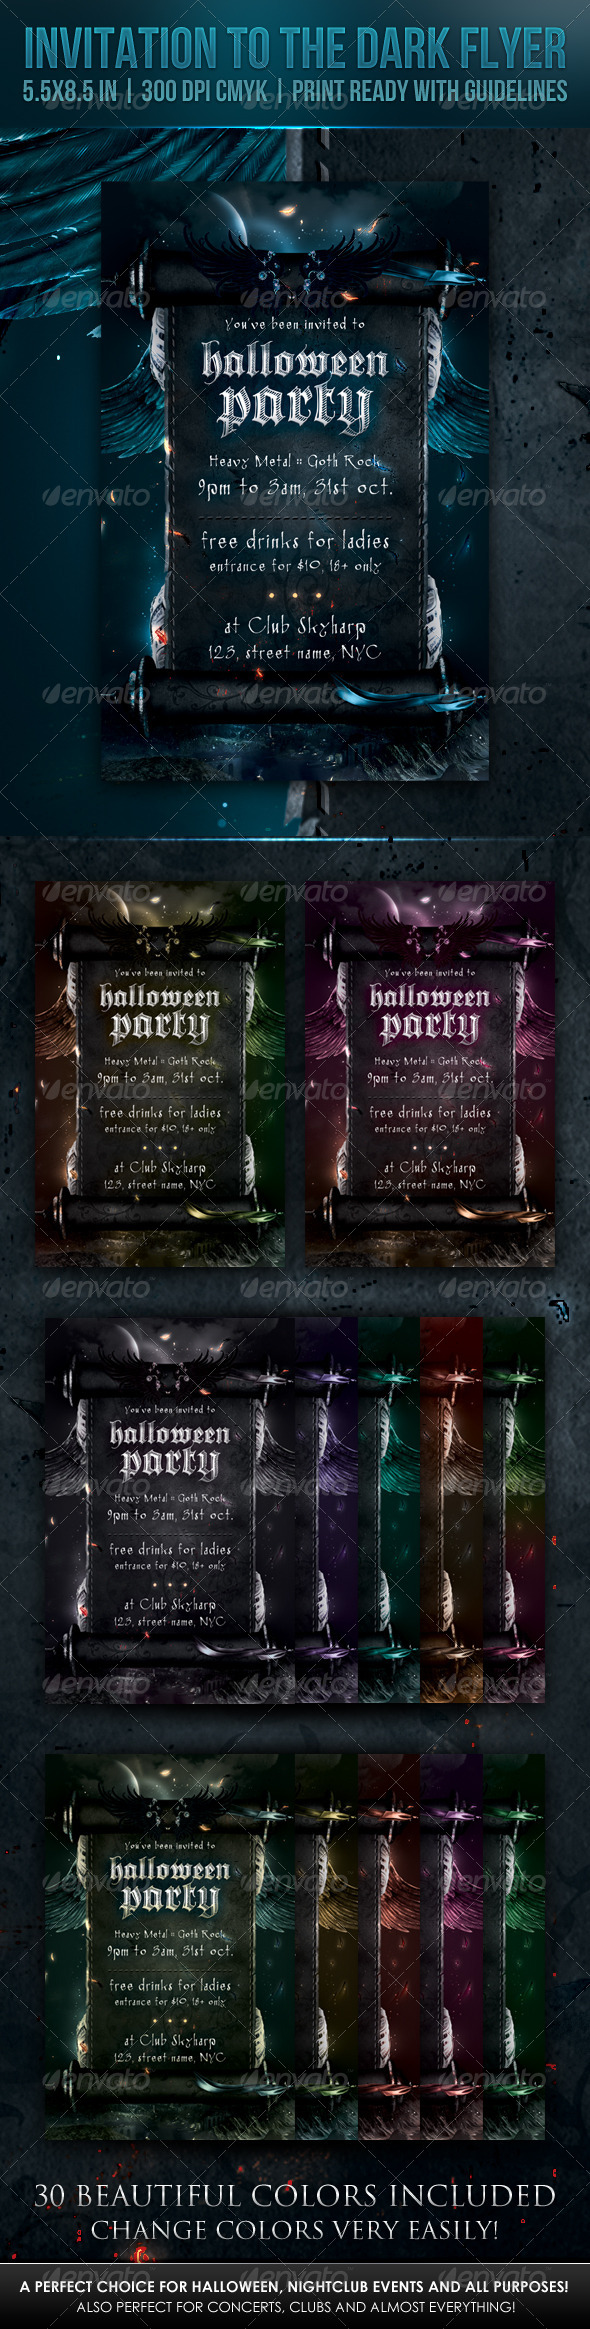 GraphicRiver Invitation to the Dark Flyer 5581731